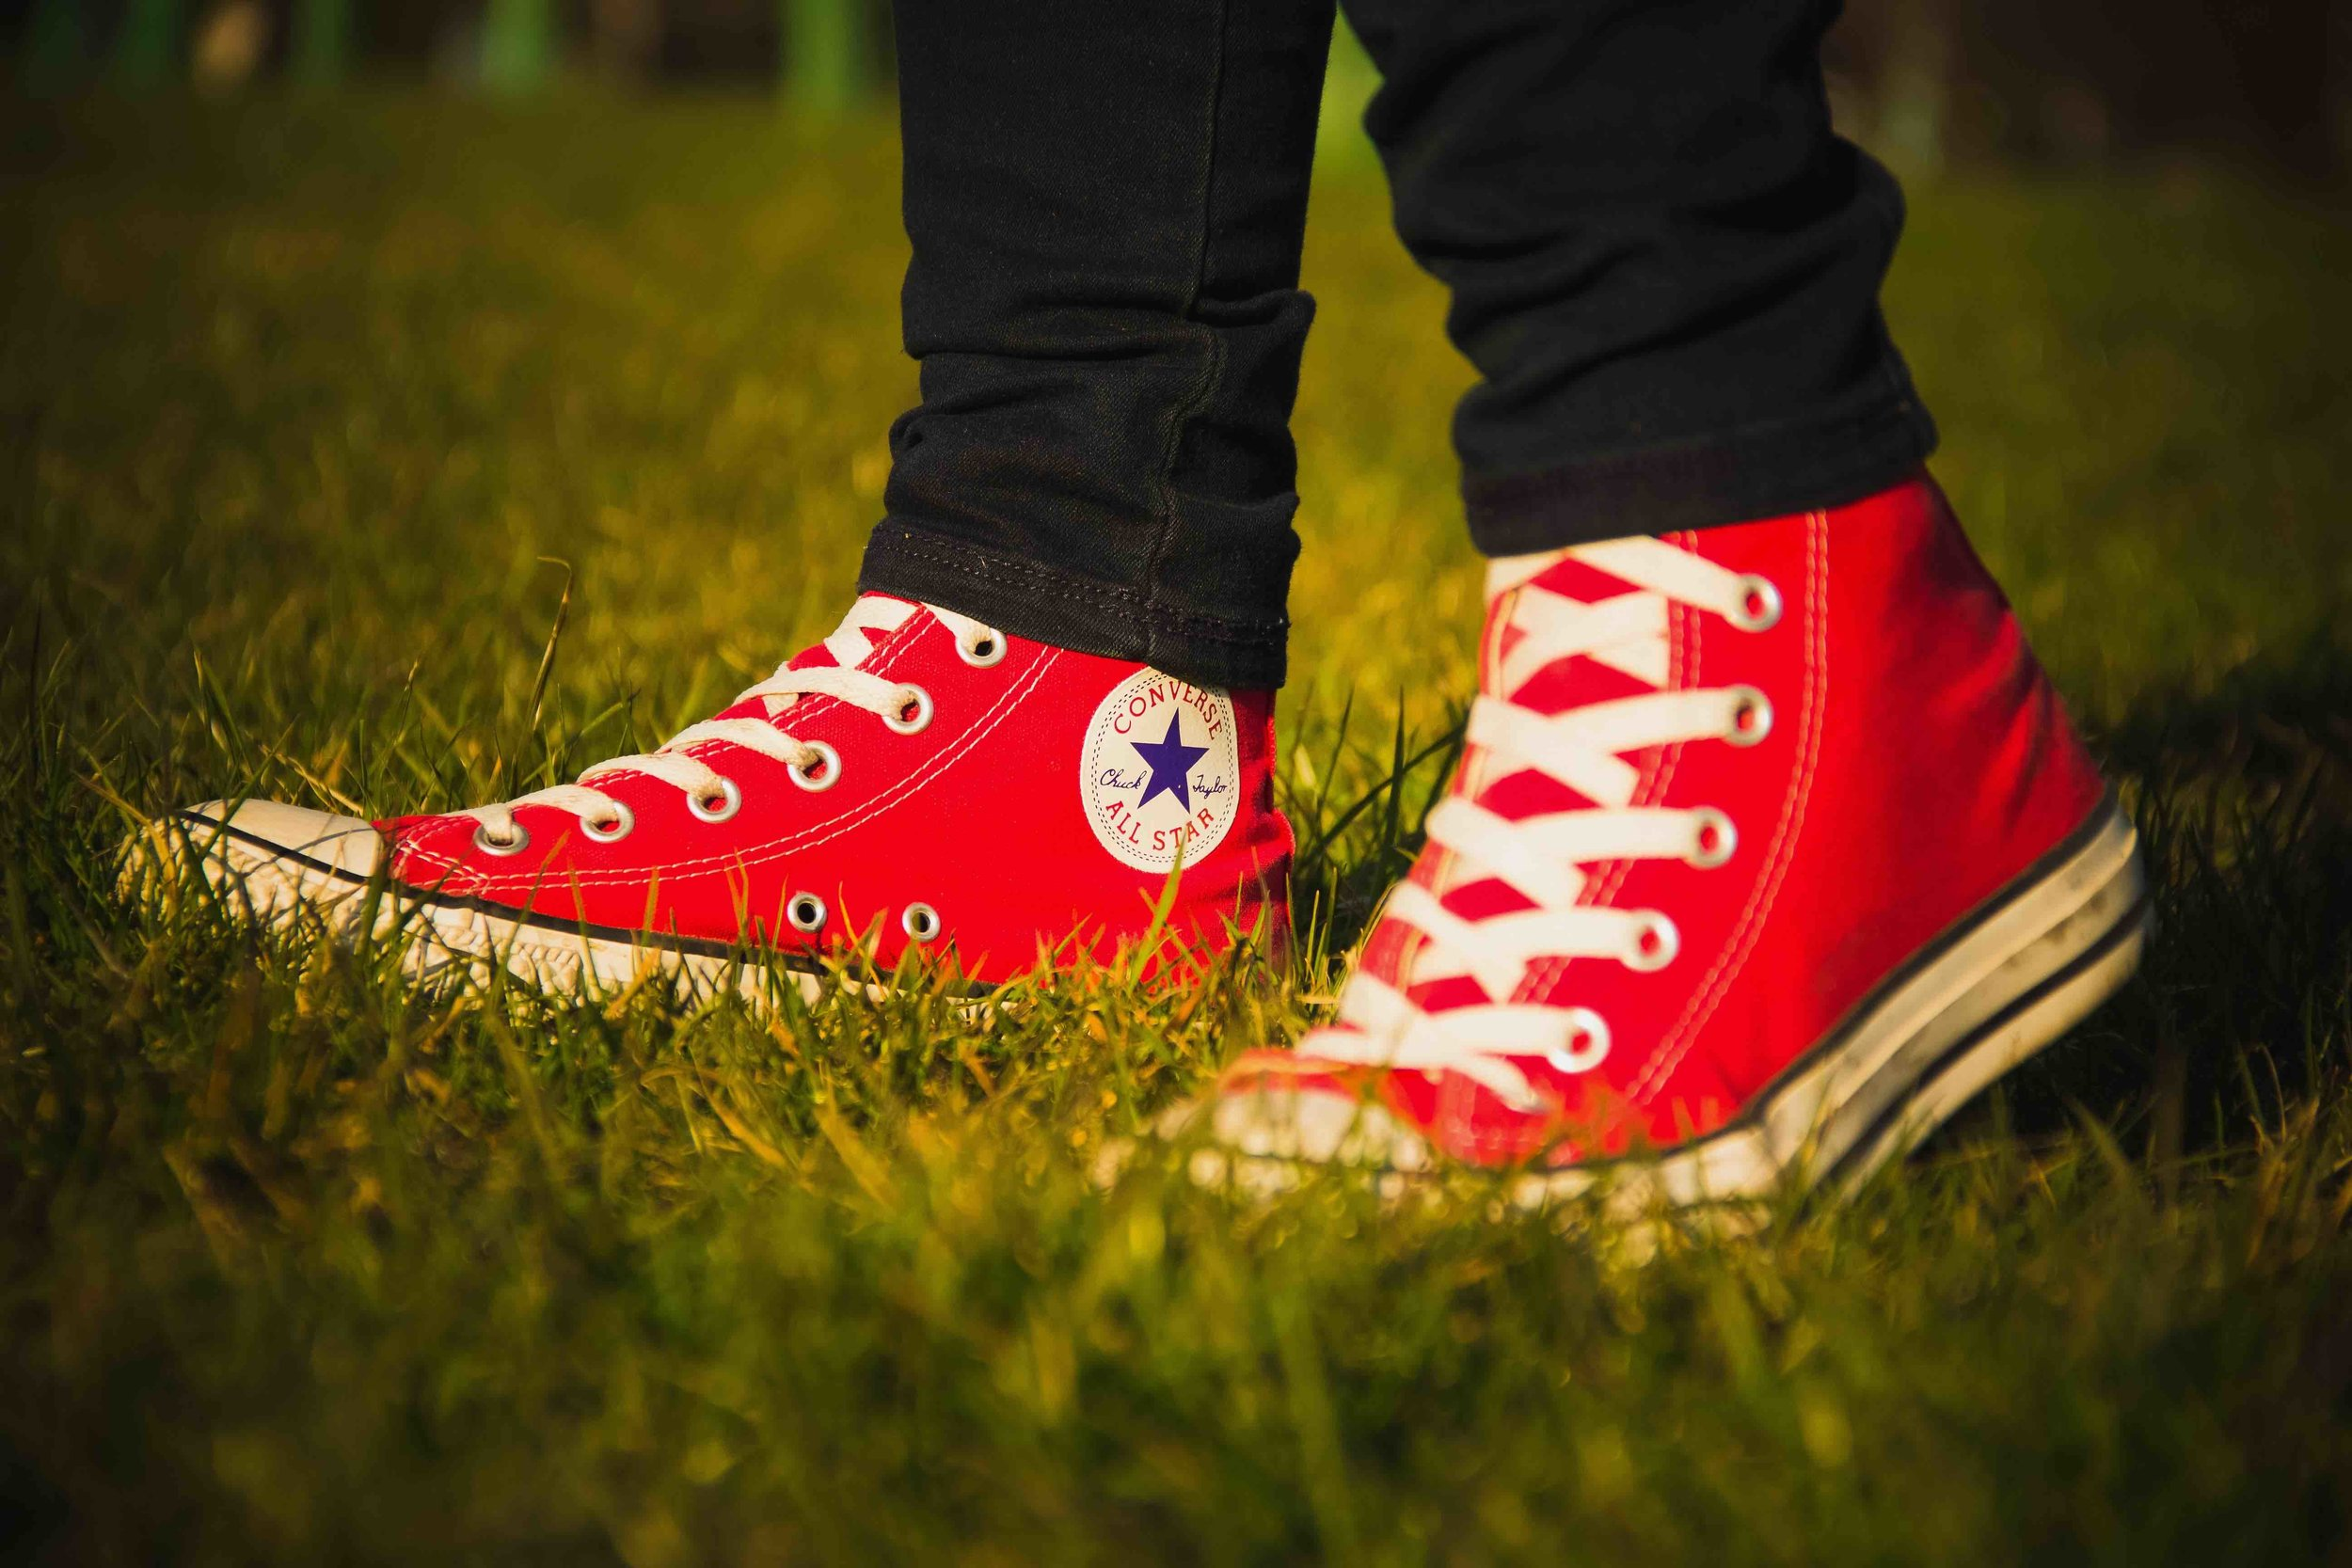 converse-all-star-logo-red-shoes.jpg